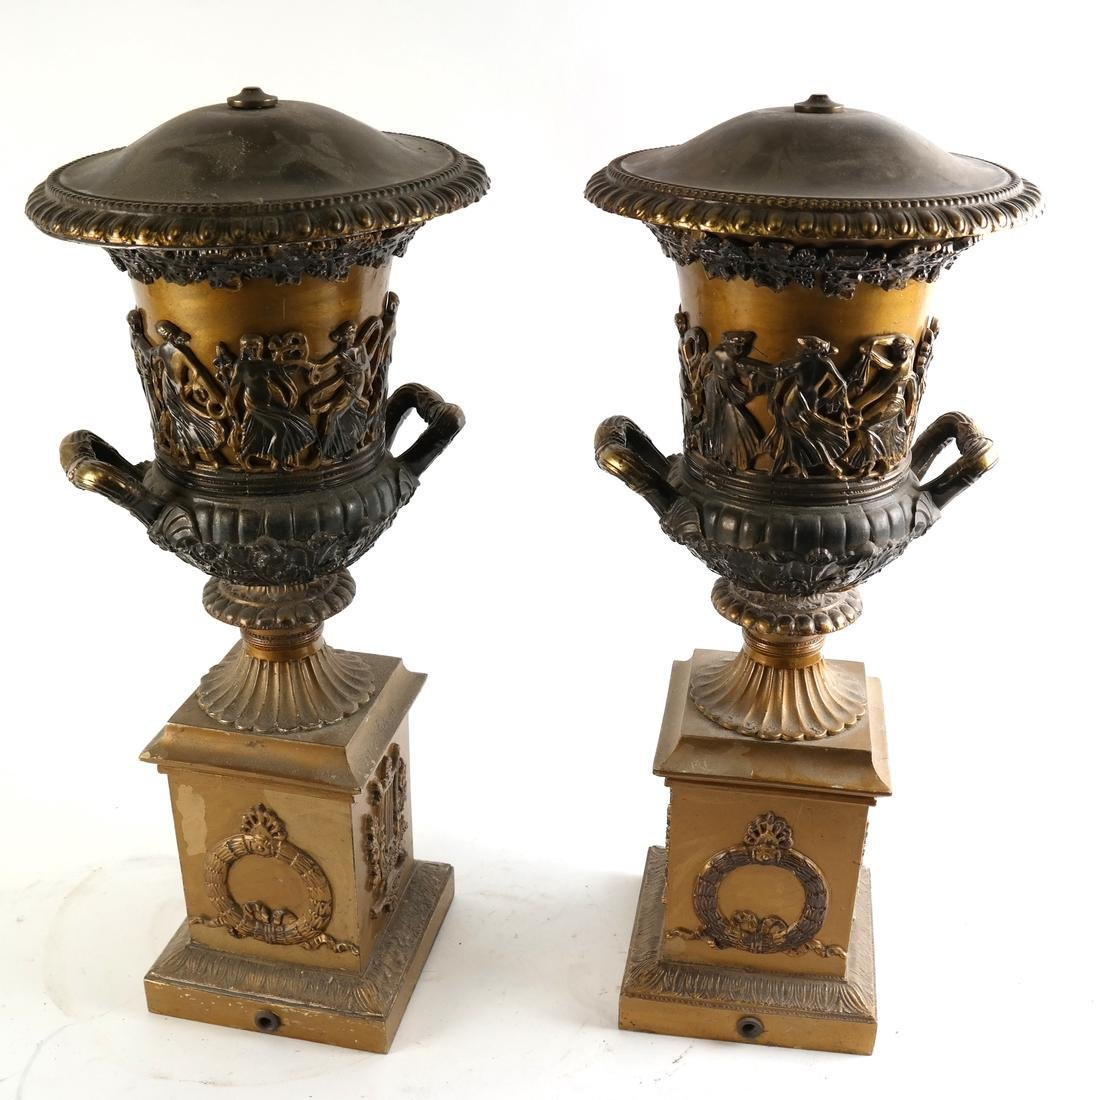 Pair of Gilt Metal Covered Urns